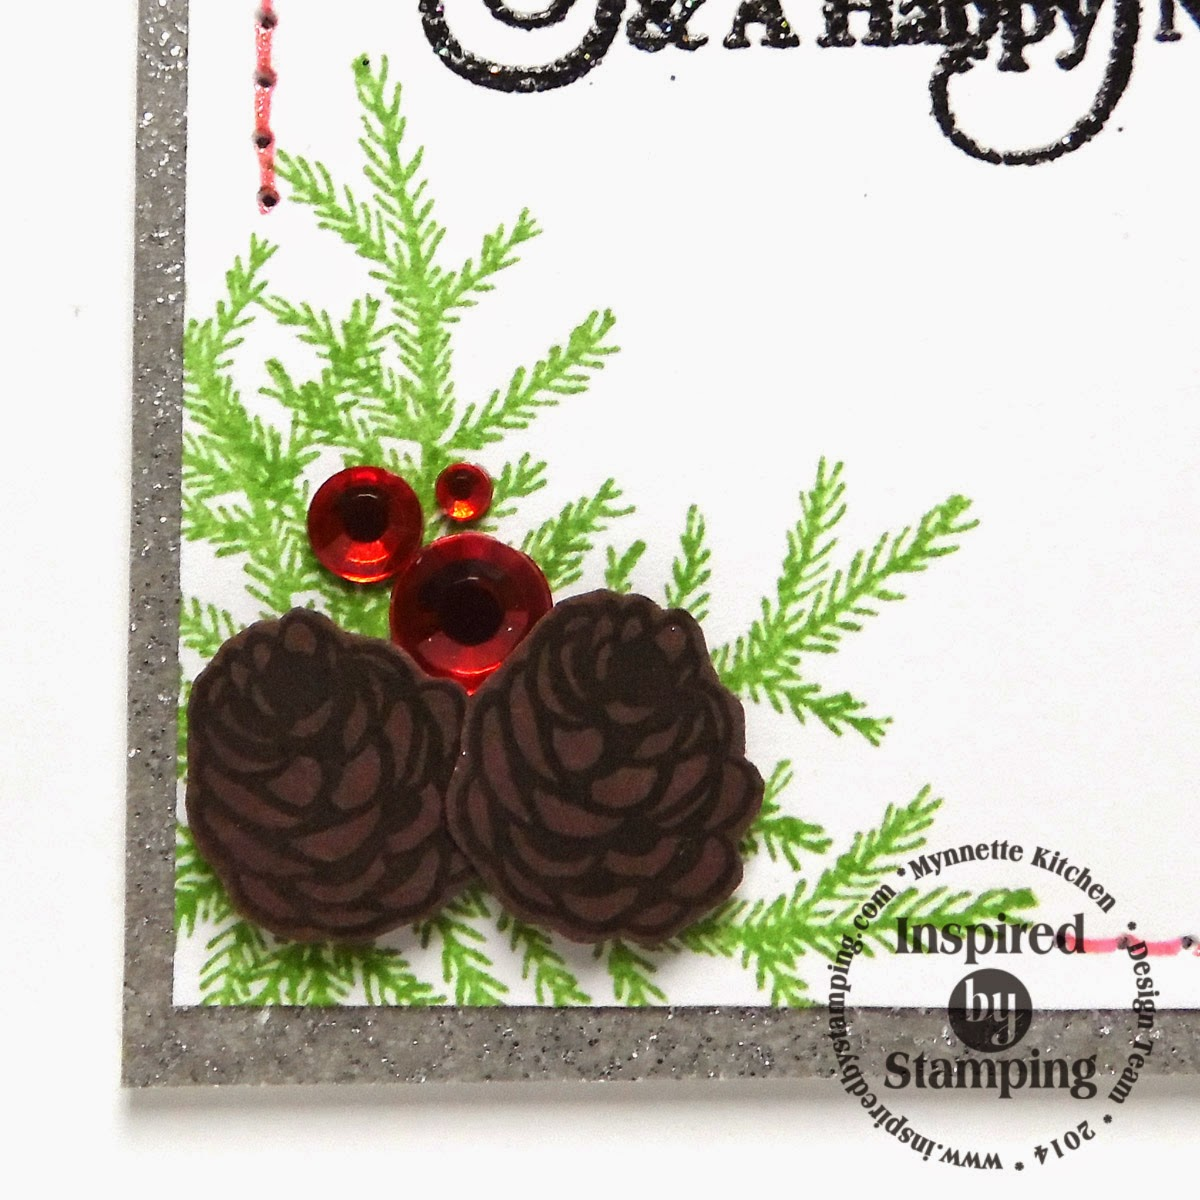 Inspired by Stamping, Mynn Kitchen, Big Holidays stamp set, Christams Wreath stamp set, Christmas card, Holiday card